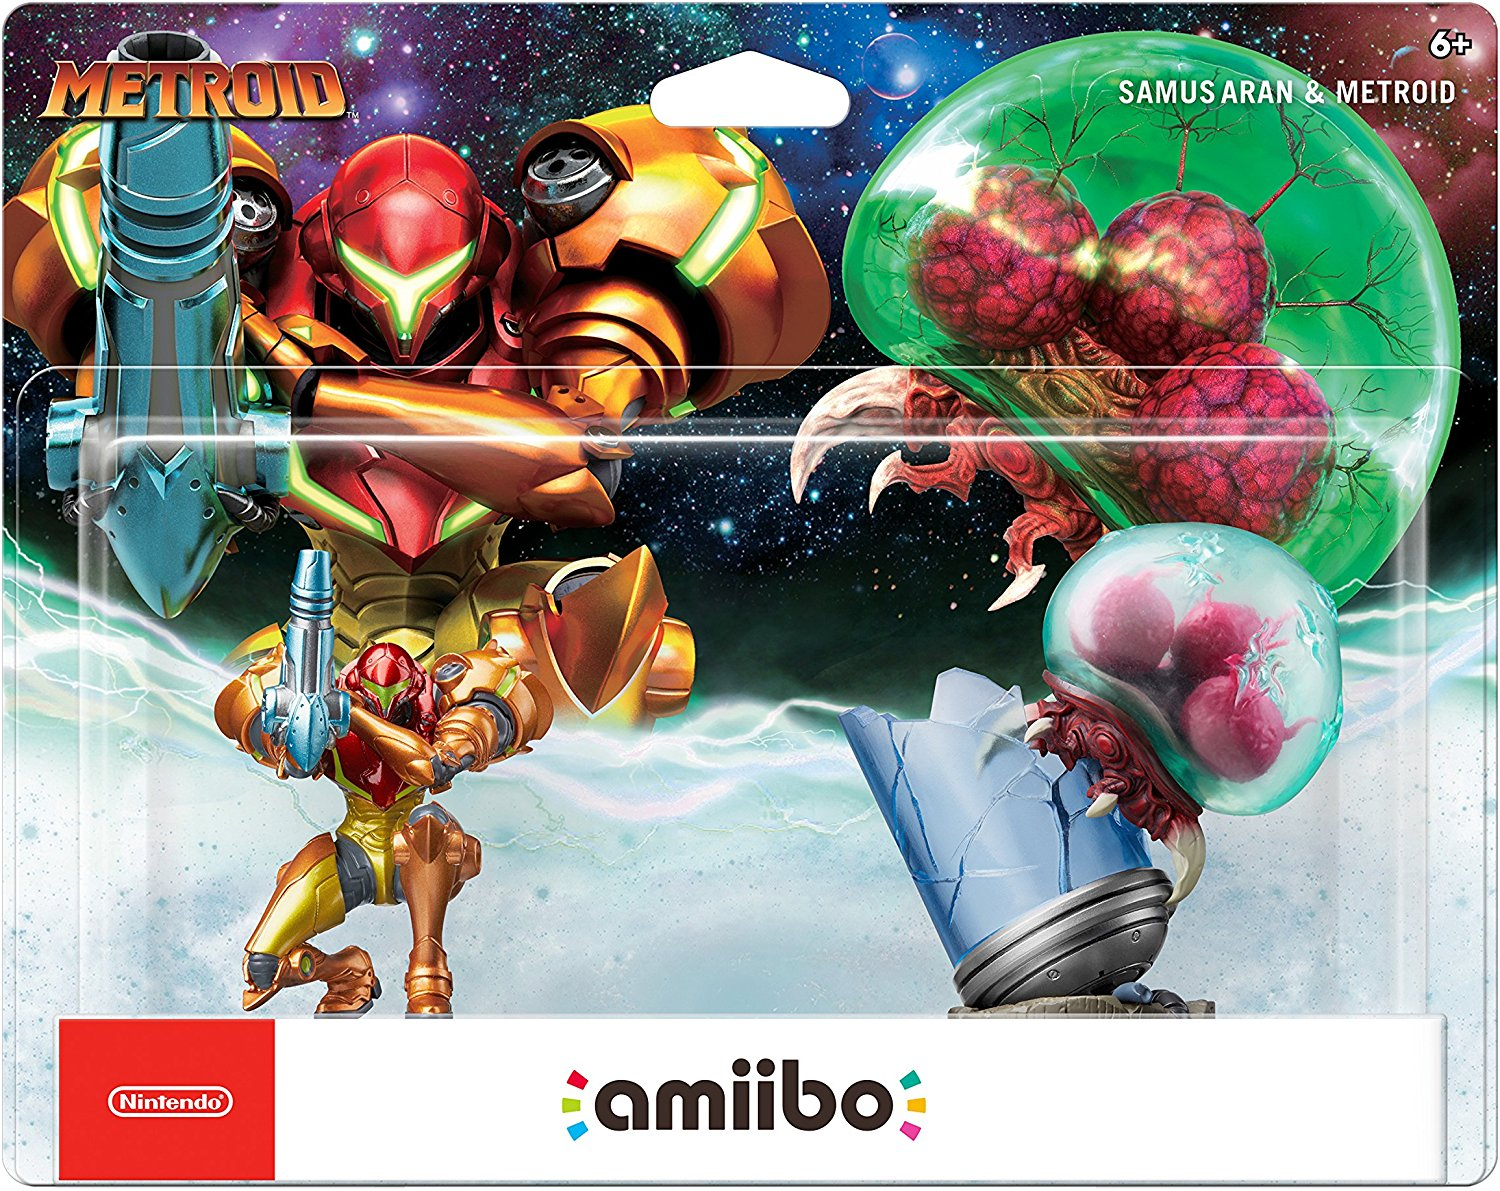 How the Metroid amiibo work in Metroid  Samus Returns   Nintendo     Metroid  Samus Returns will have plenty of amiibo functionality when the  game launches in September  You ll be able to use the new Samus and Metroid  figures